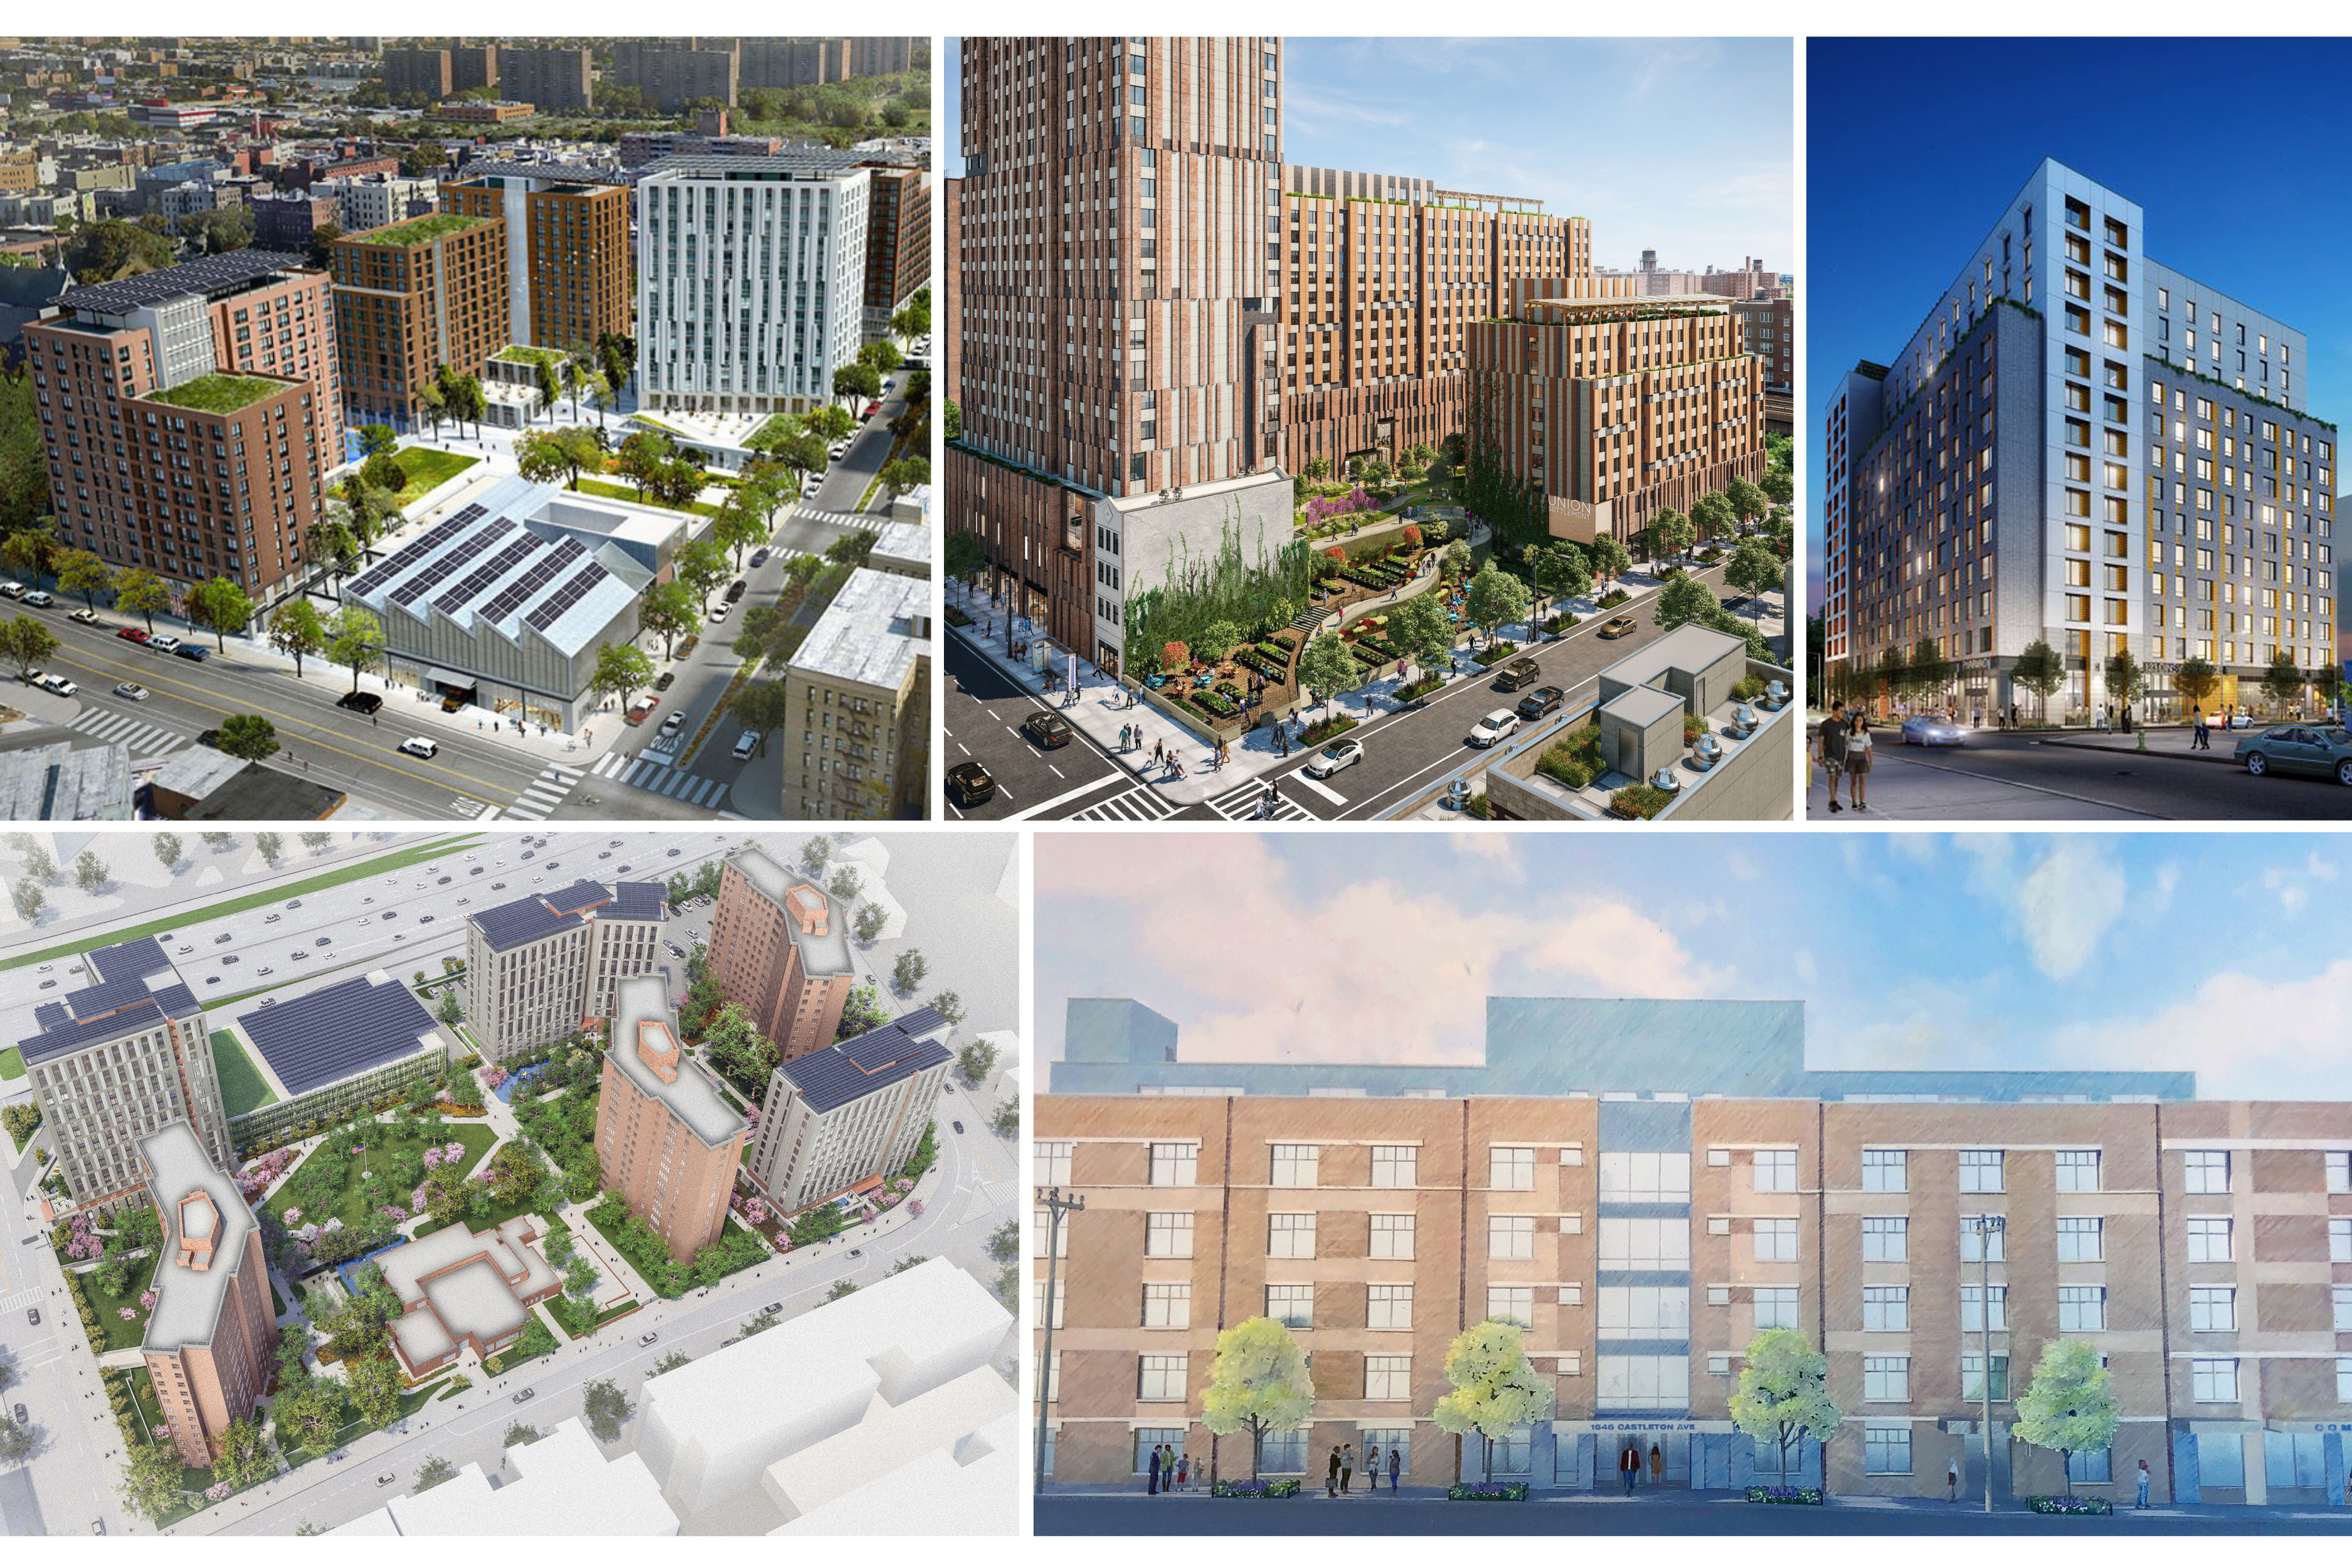 New affordable buildings in 2019: The Peninsula, Sendero Verde, Chestnut Commons, Apex Place, and Ca